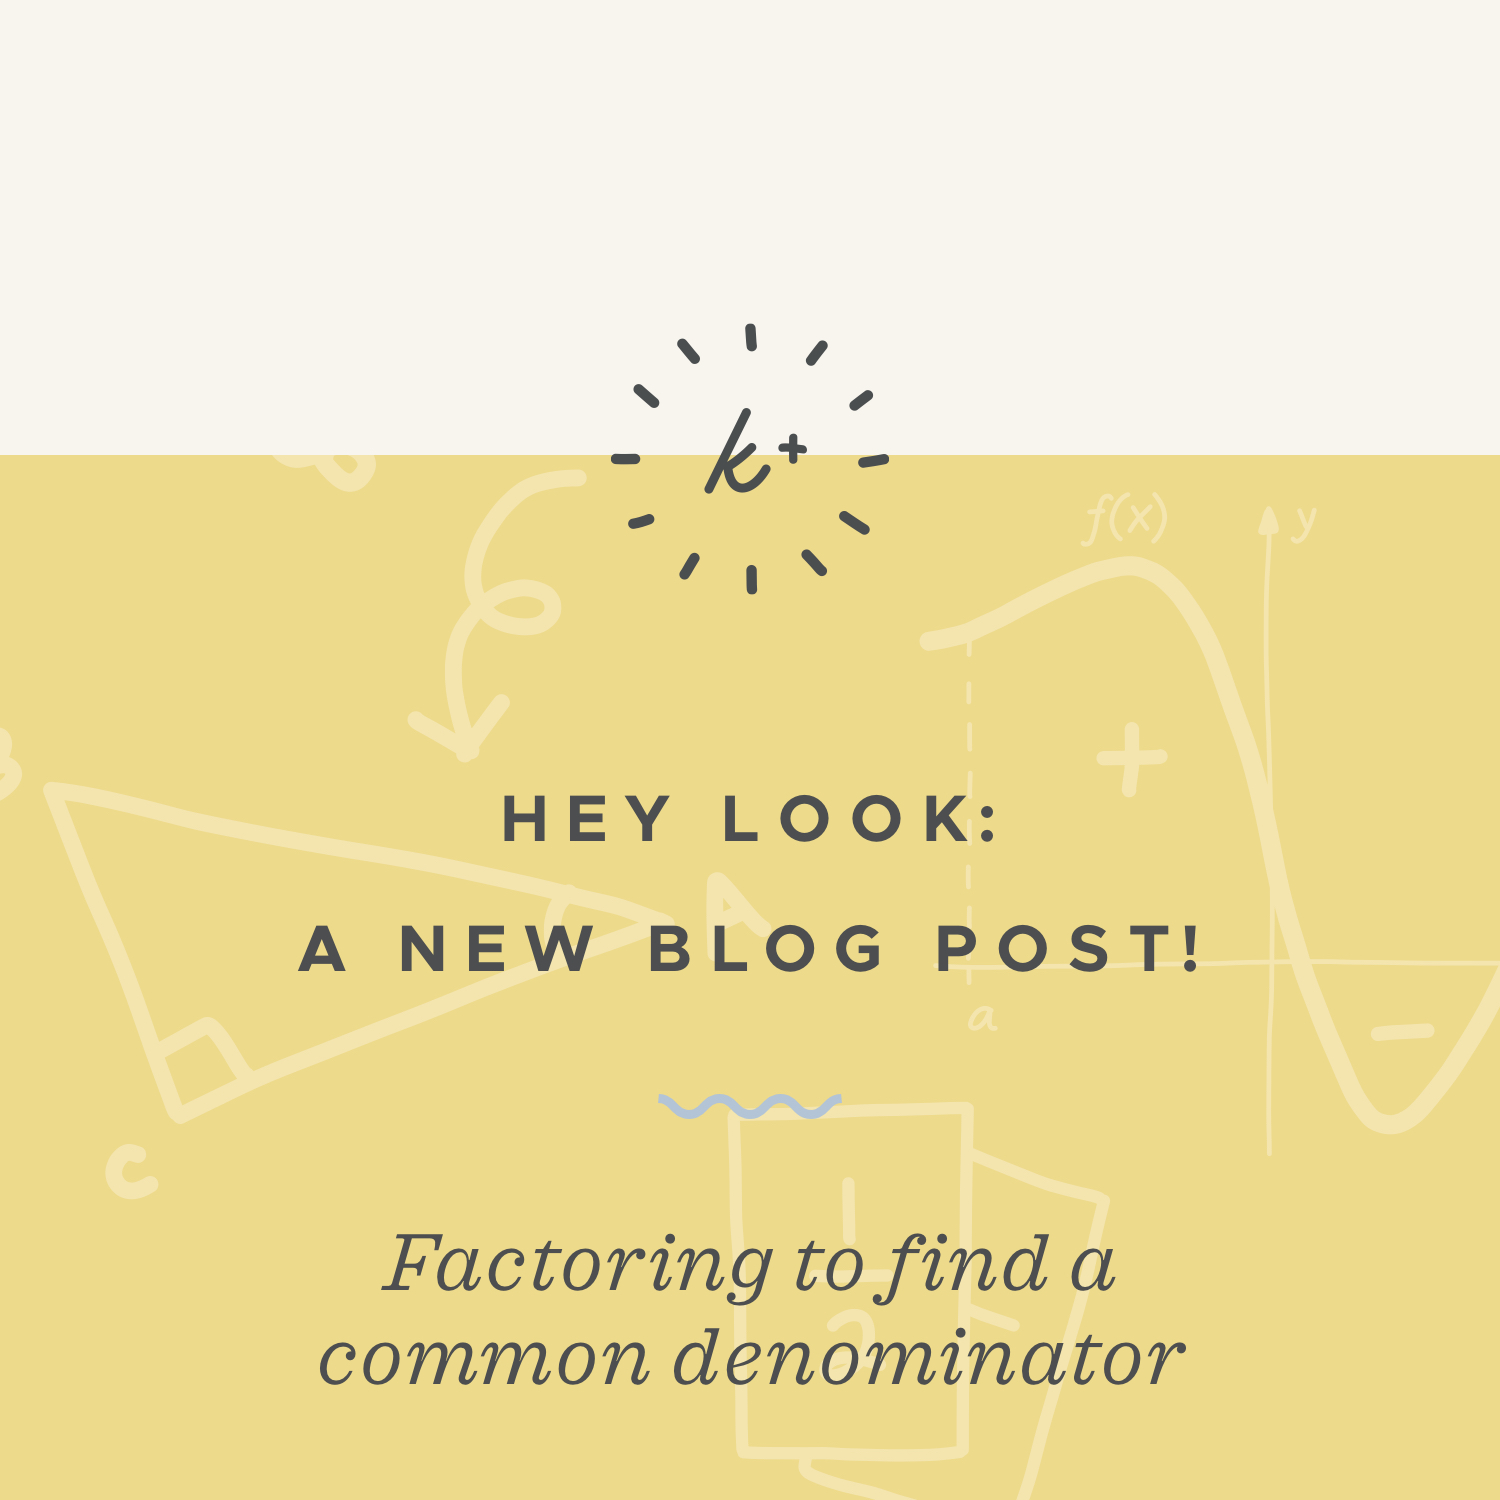 Factoring to find a common denominator blog post.jpeg